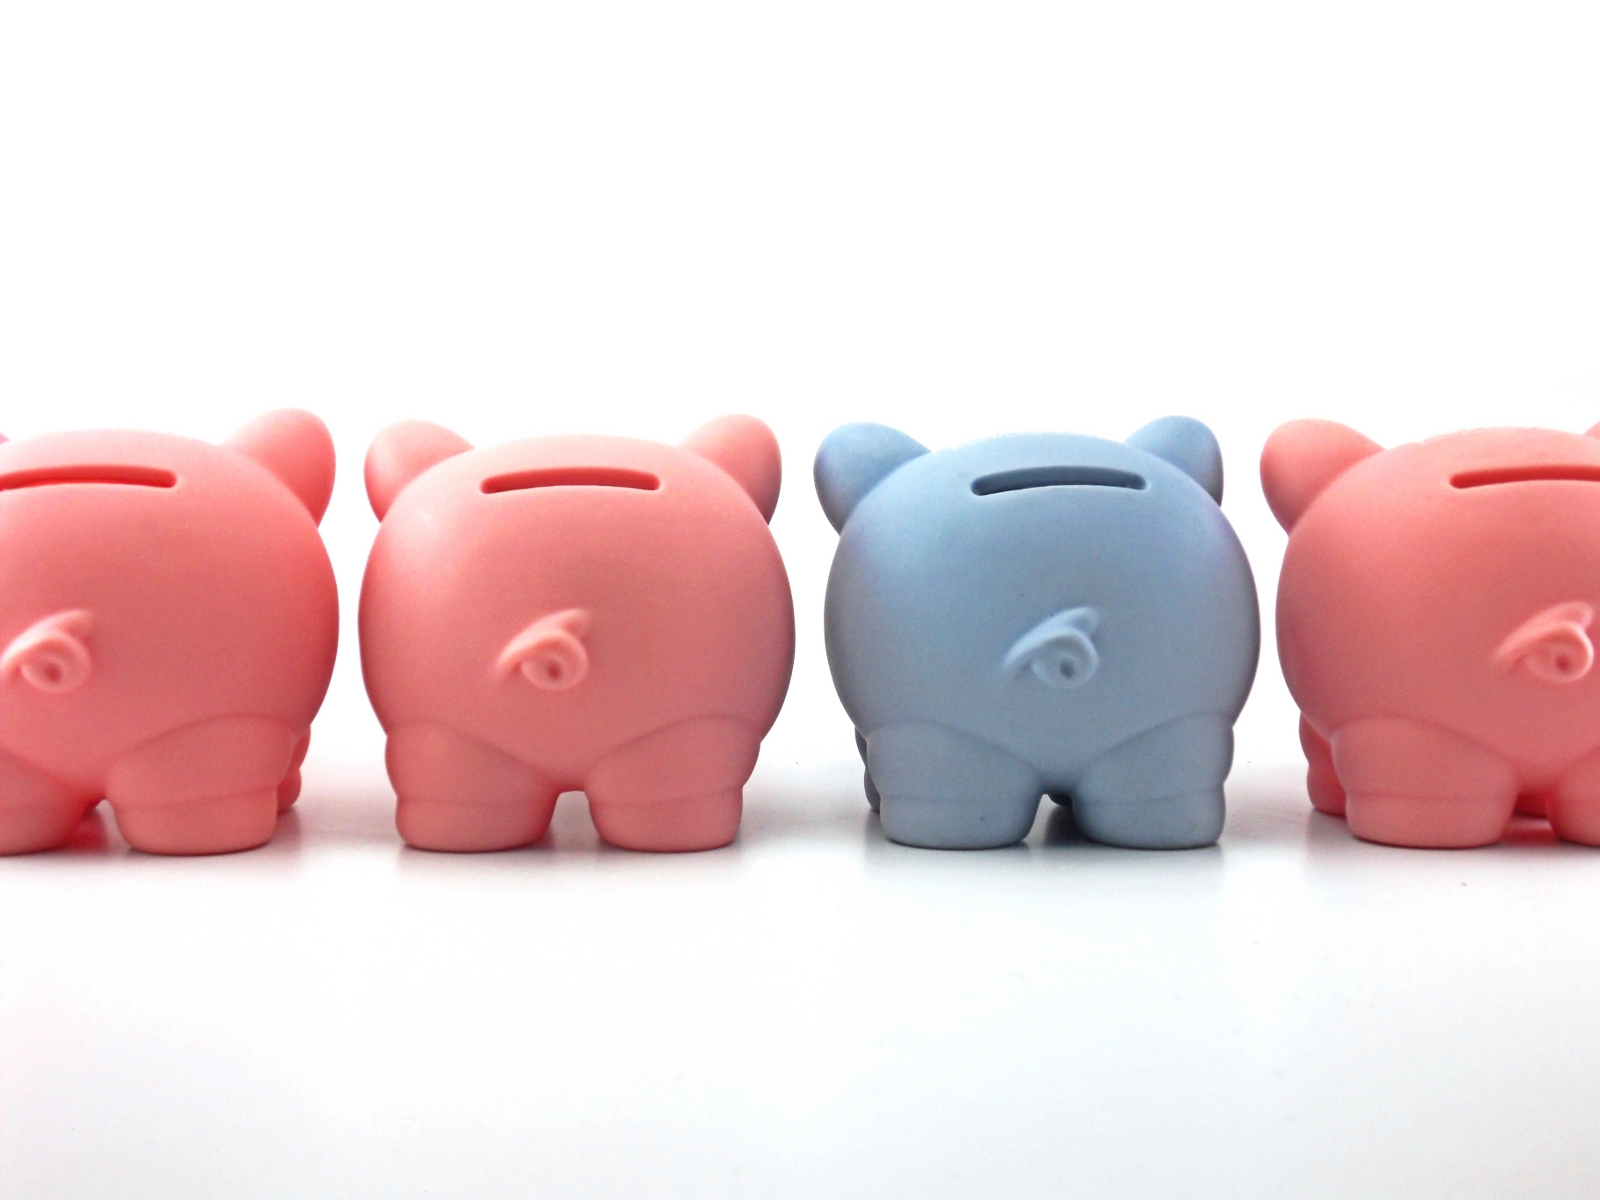 stockvault-piggy-bank117574.jpg